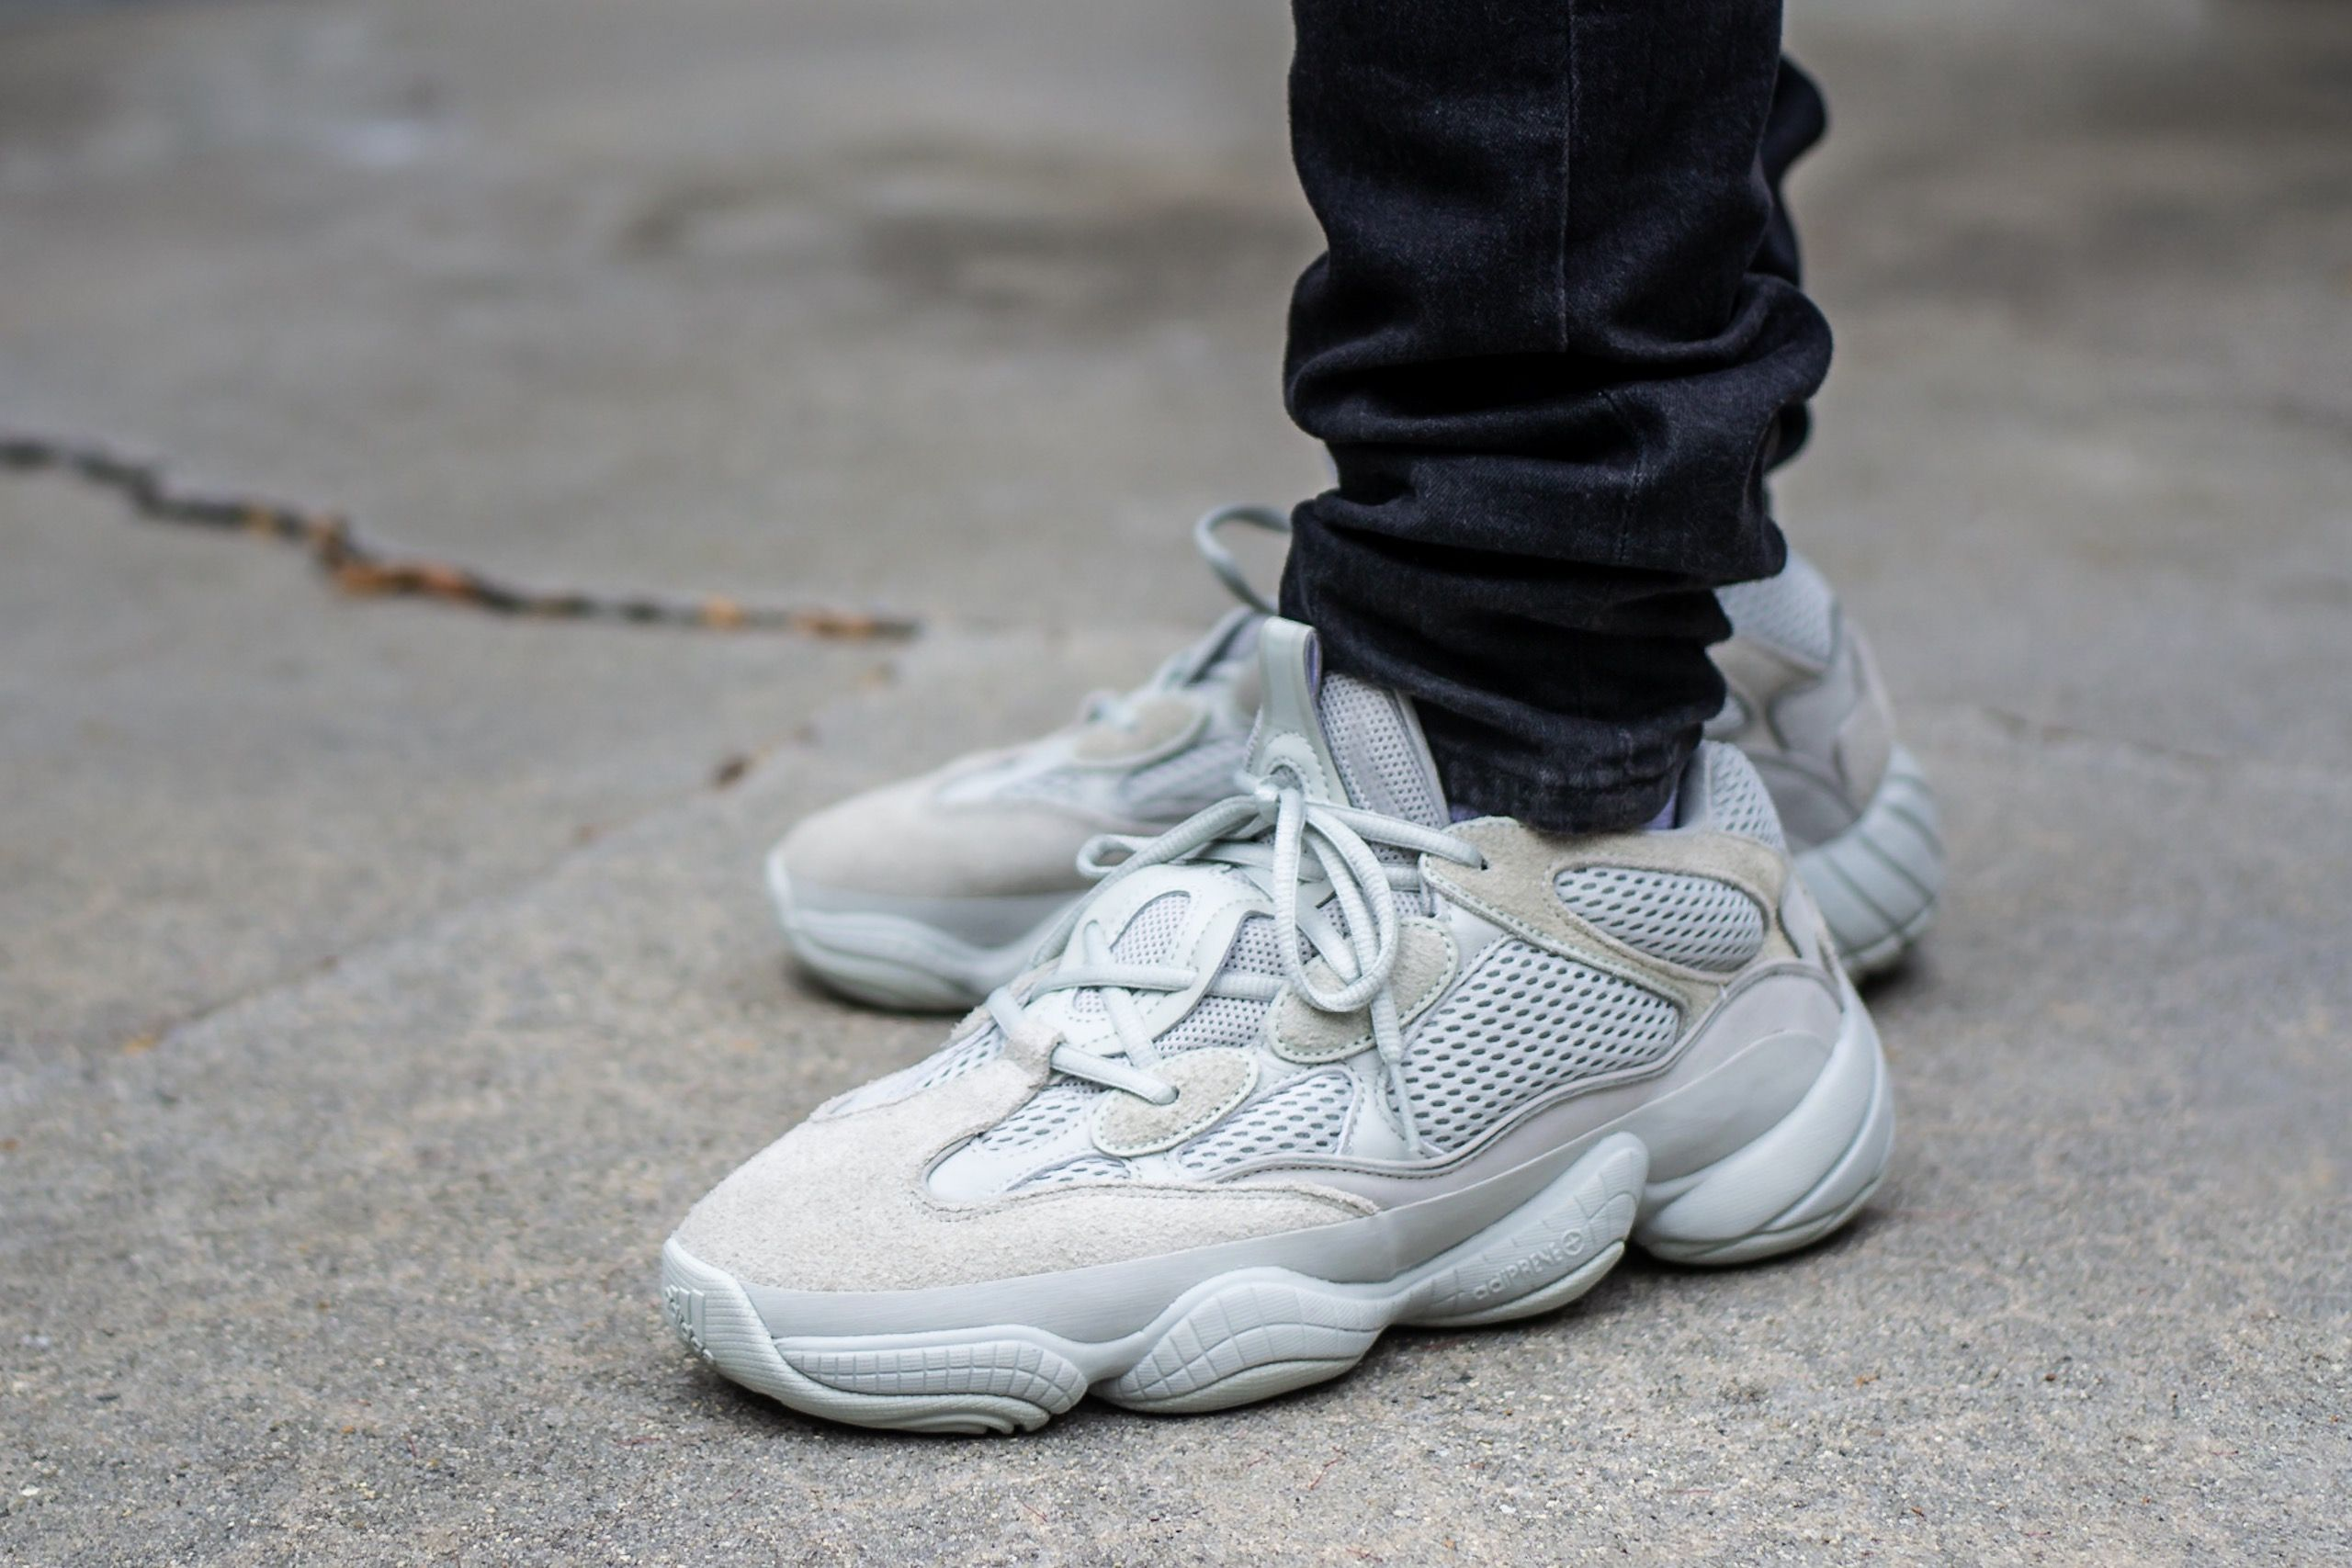 promo code 646ad 2ce7d Adidas Yeezy 500 Salt On Feet Sneaker Review | Sneakers ...